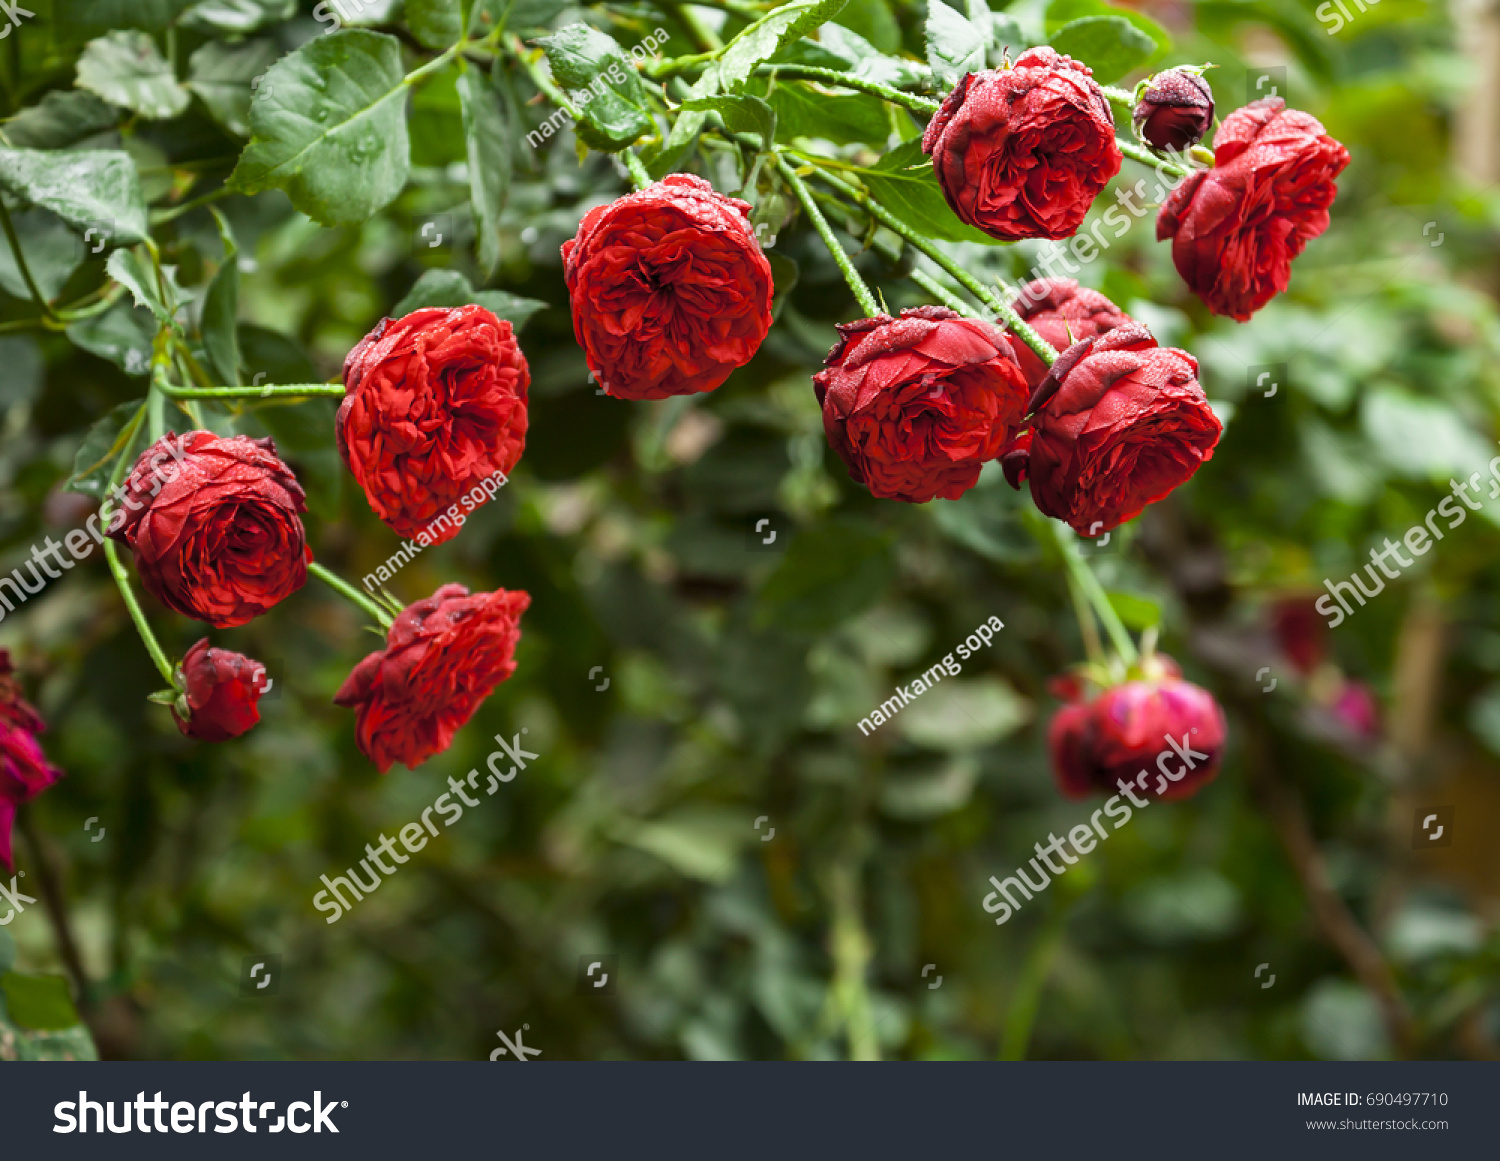 Beautiful roses flower rose garden lovely stock photo edit now a beautiful roses flower in the rose garden lovely rose for valentine day izmirmasajfo